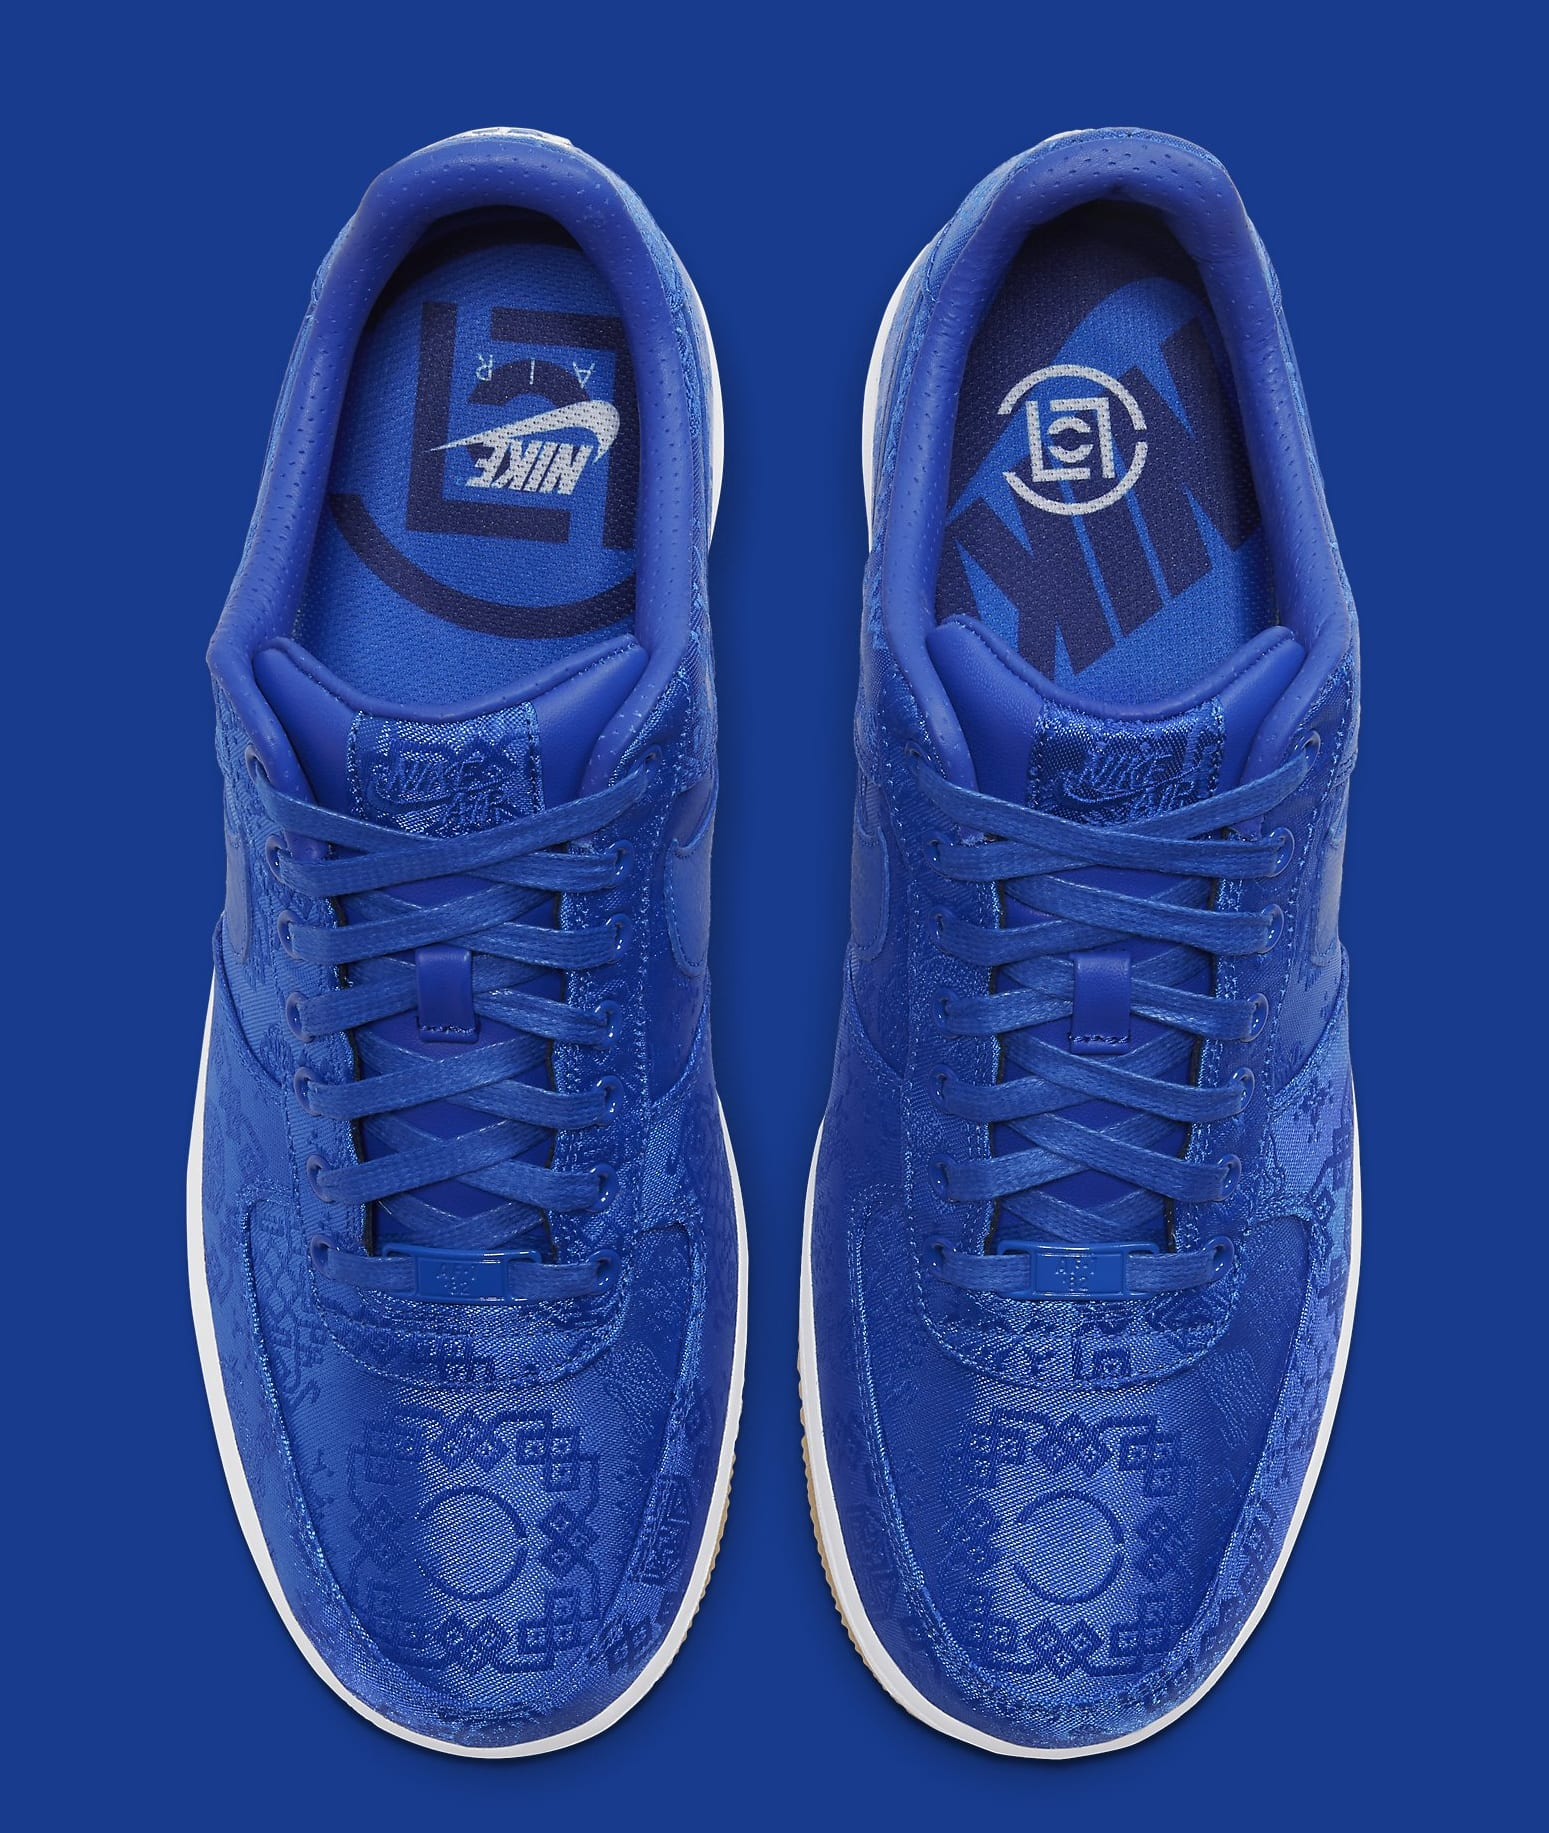 clot-nike-air-force-1-low-blue-cj5290-400-top